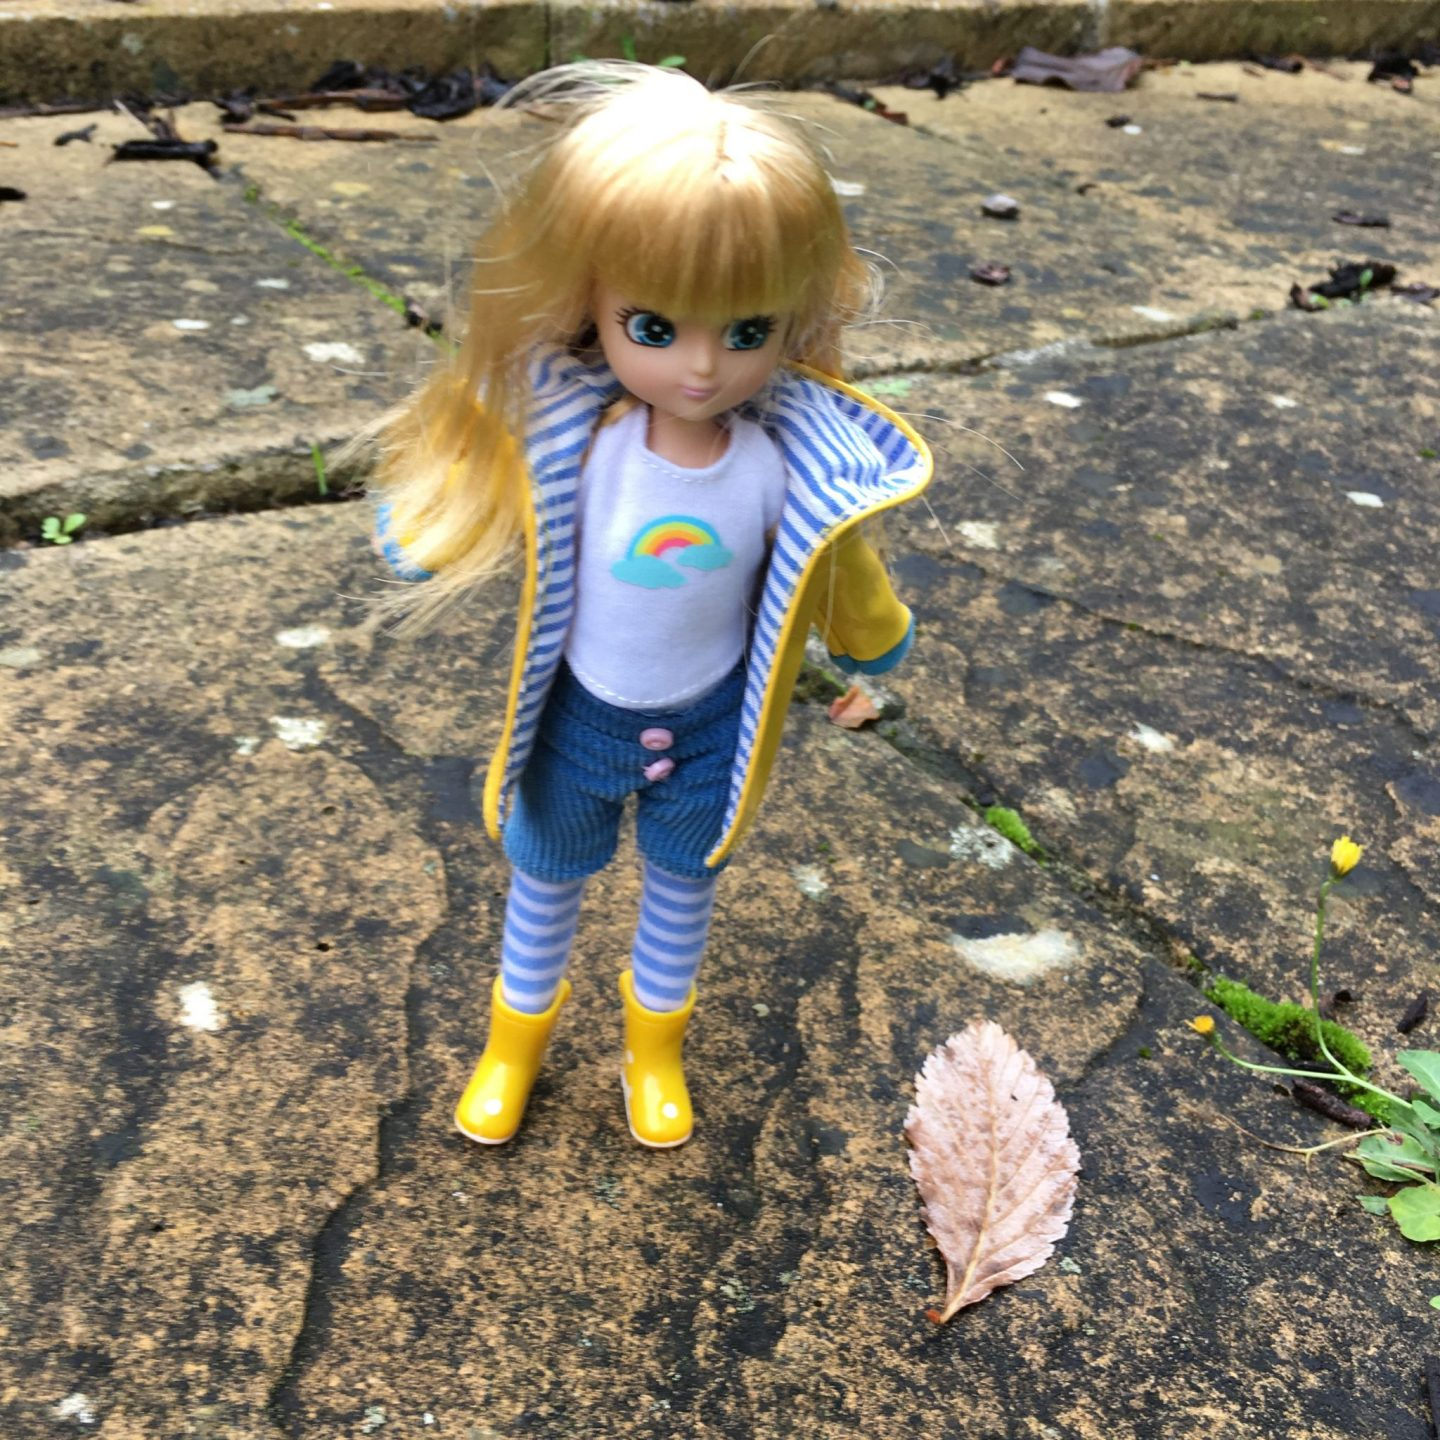 Muddy Puddles Lottie doll